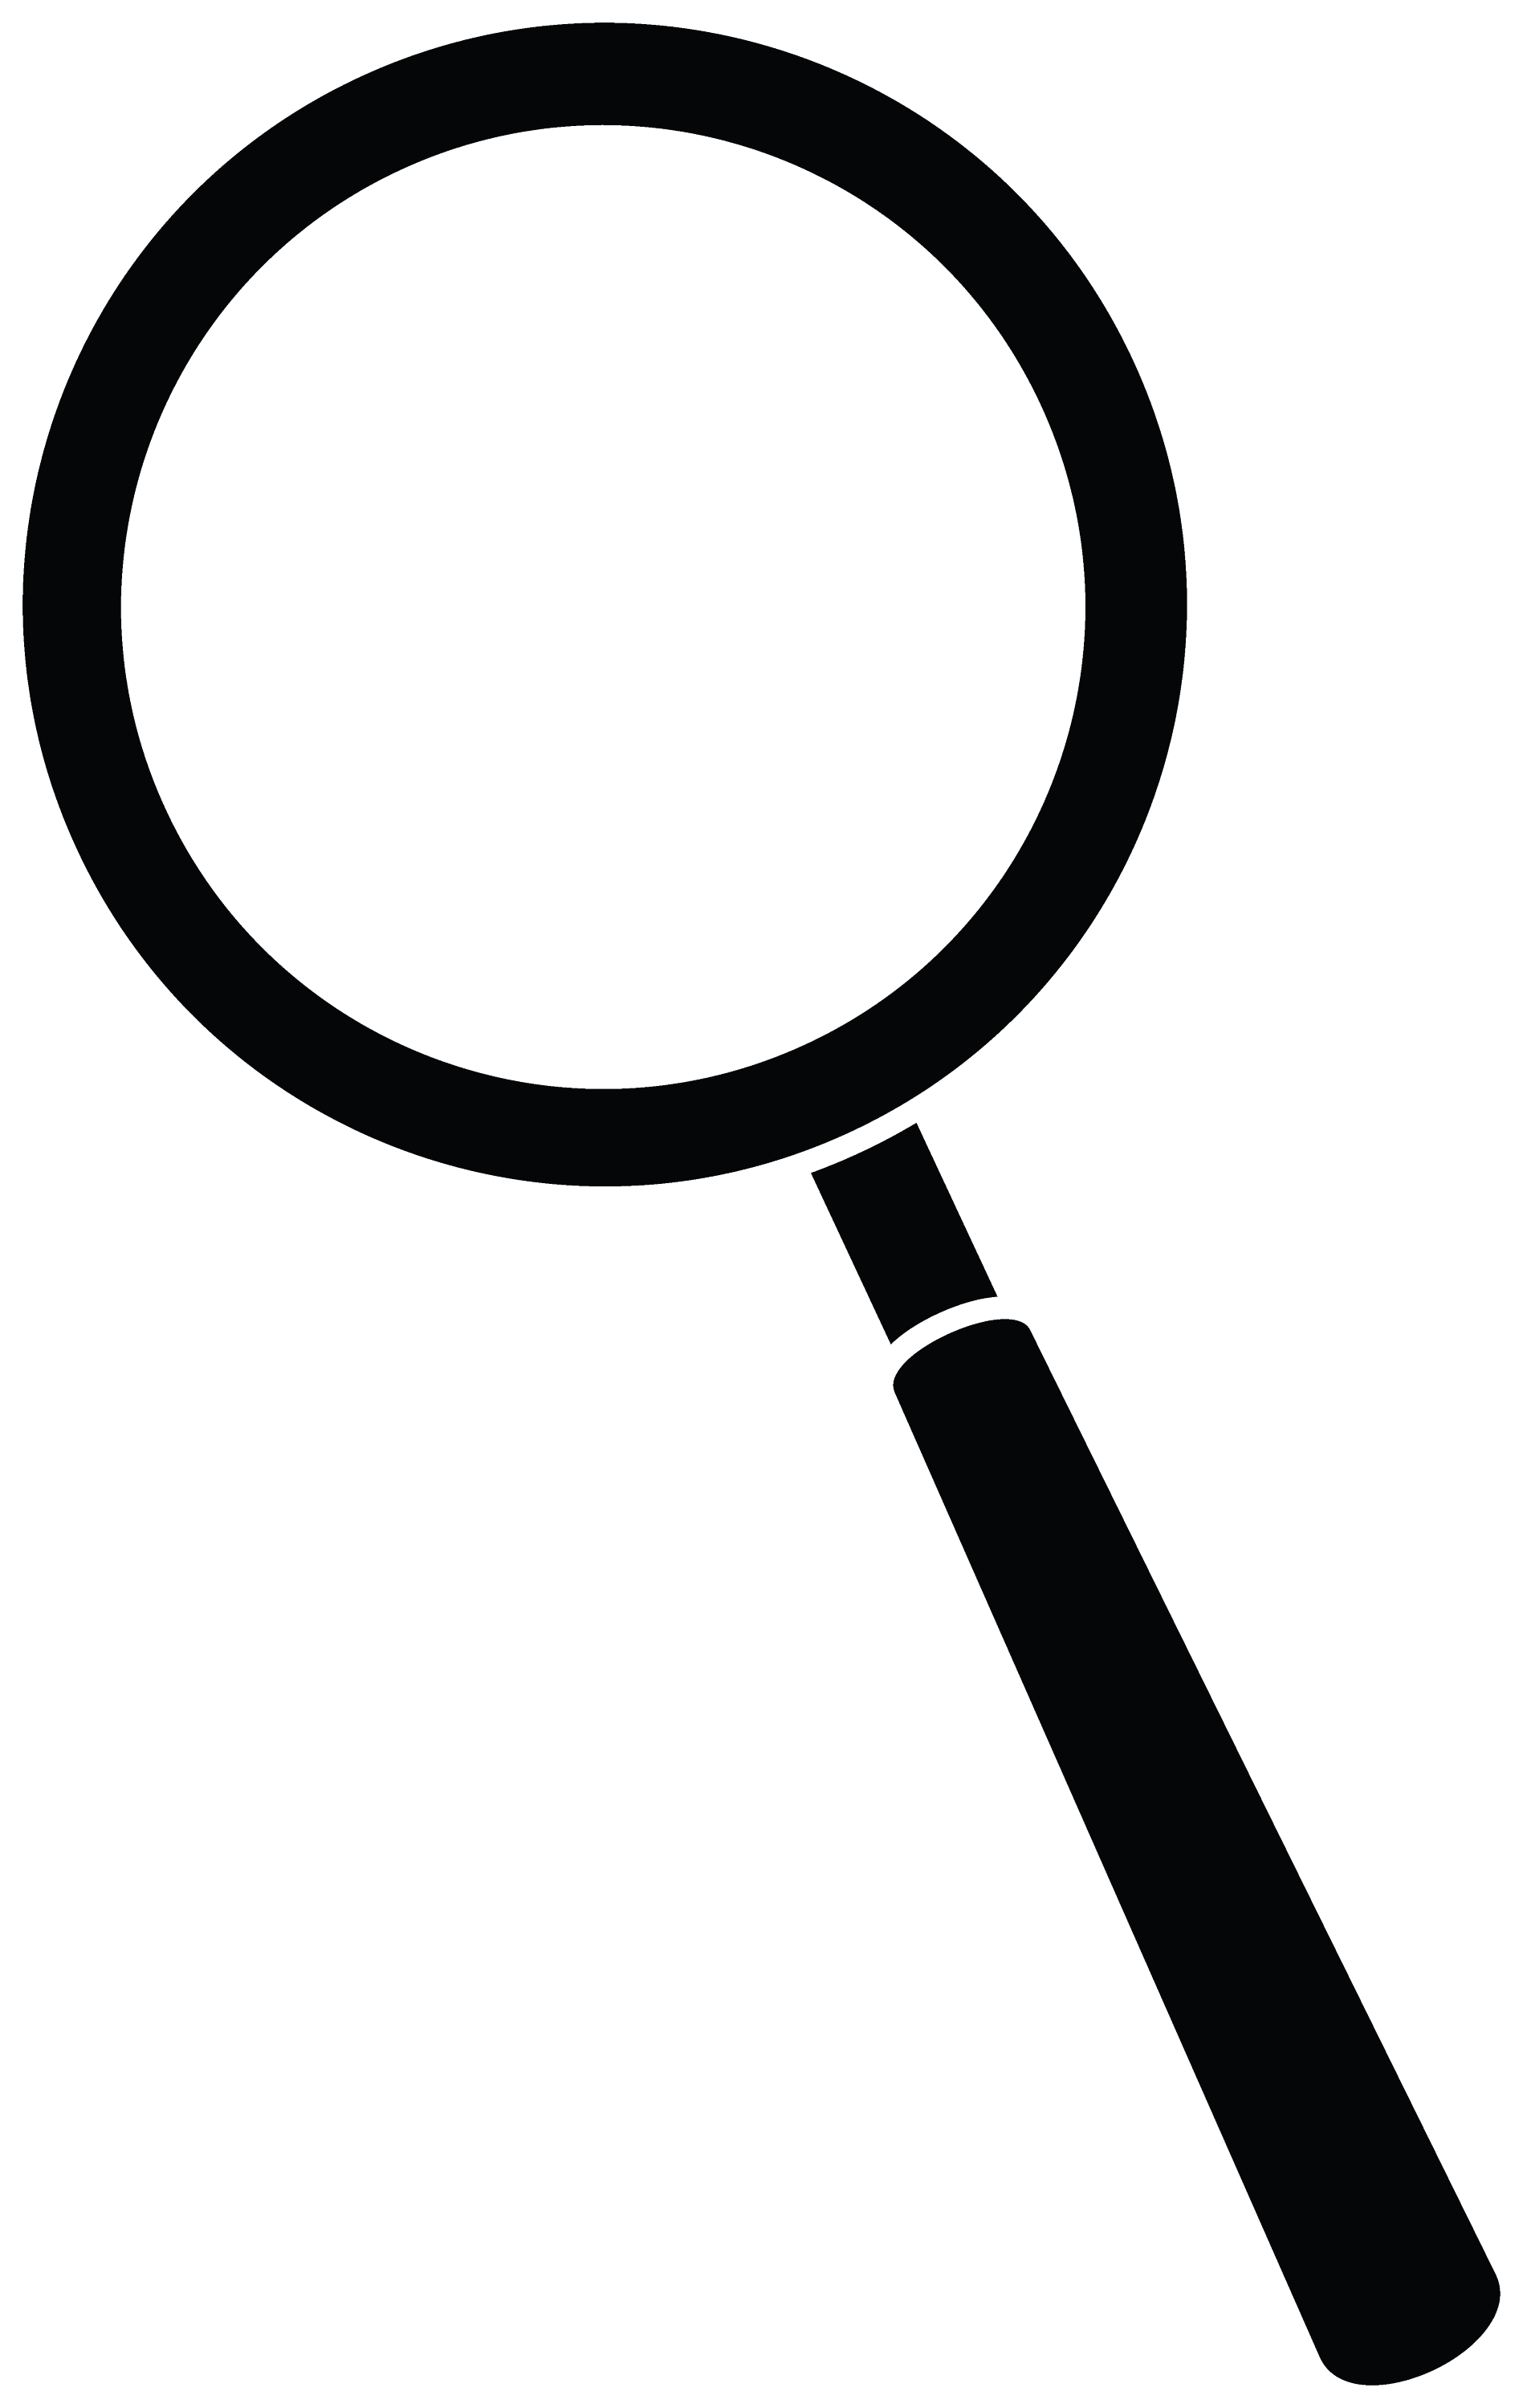 magnifying glass silhouette free clip art rh sweetclipart com clipart world and magnifying glass clipart magnifying glass